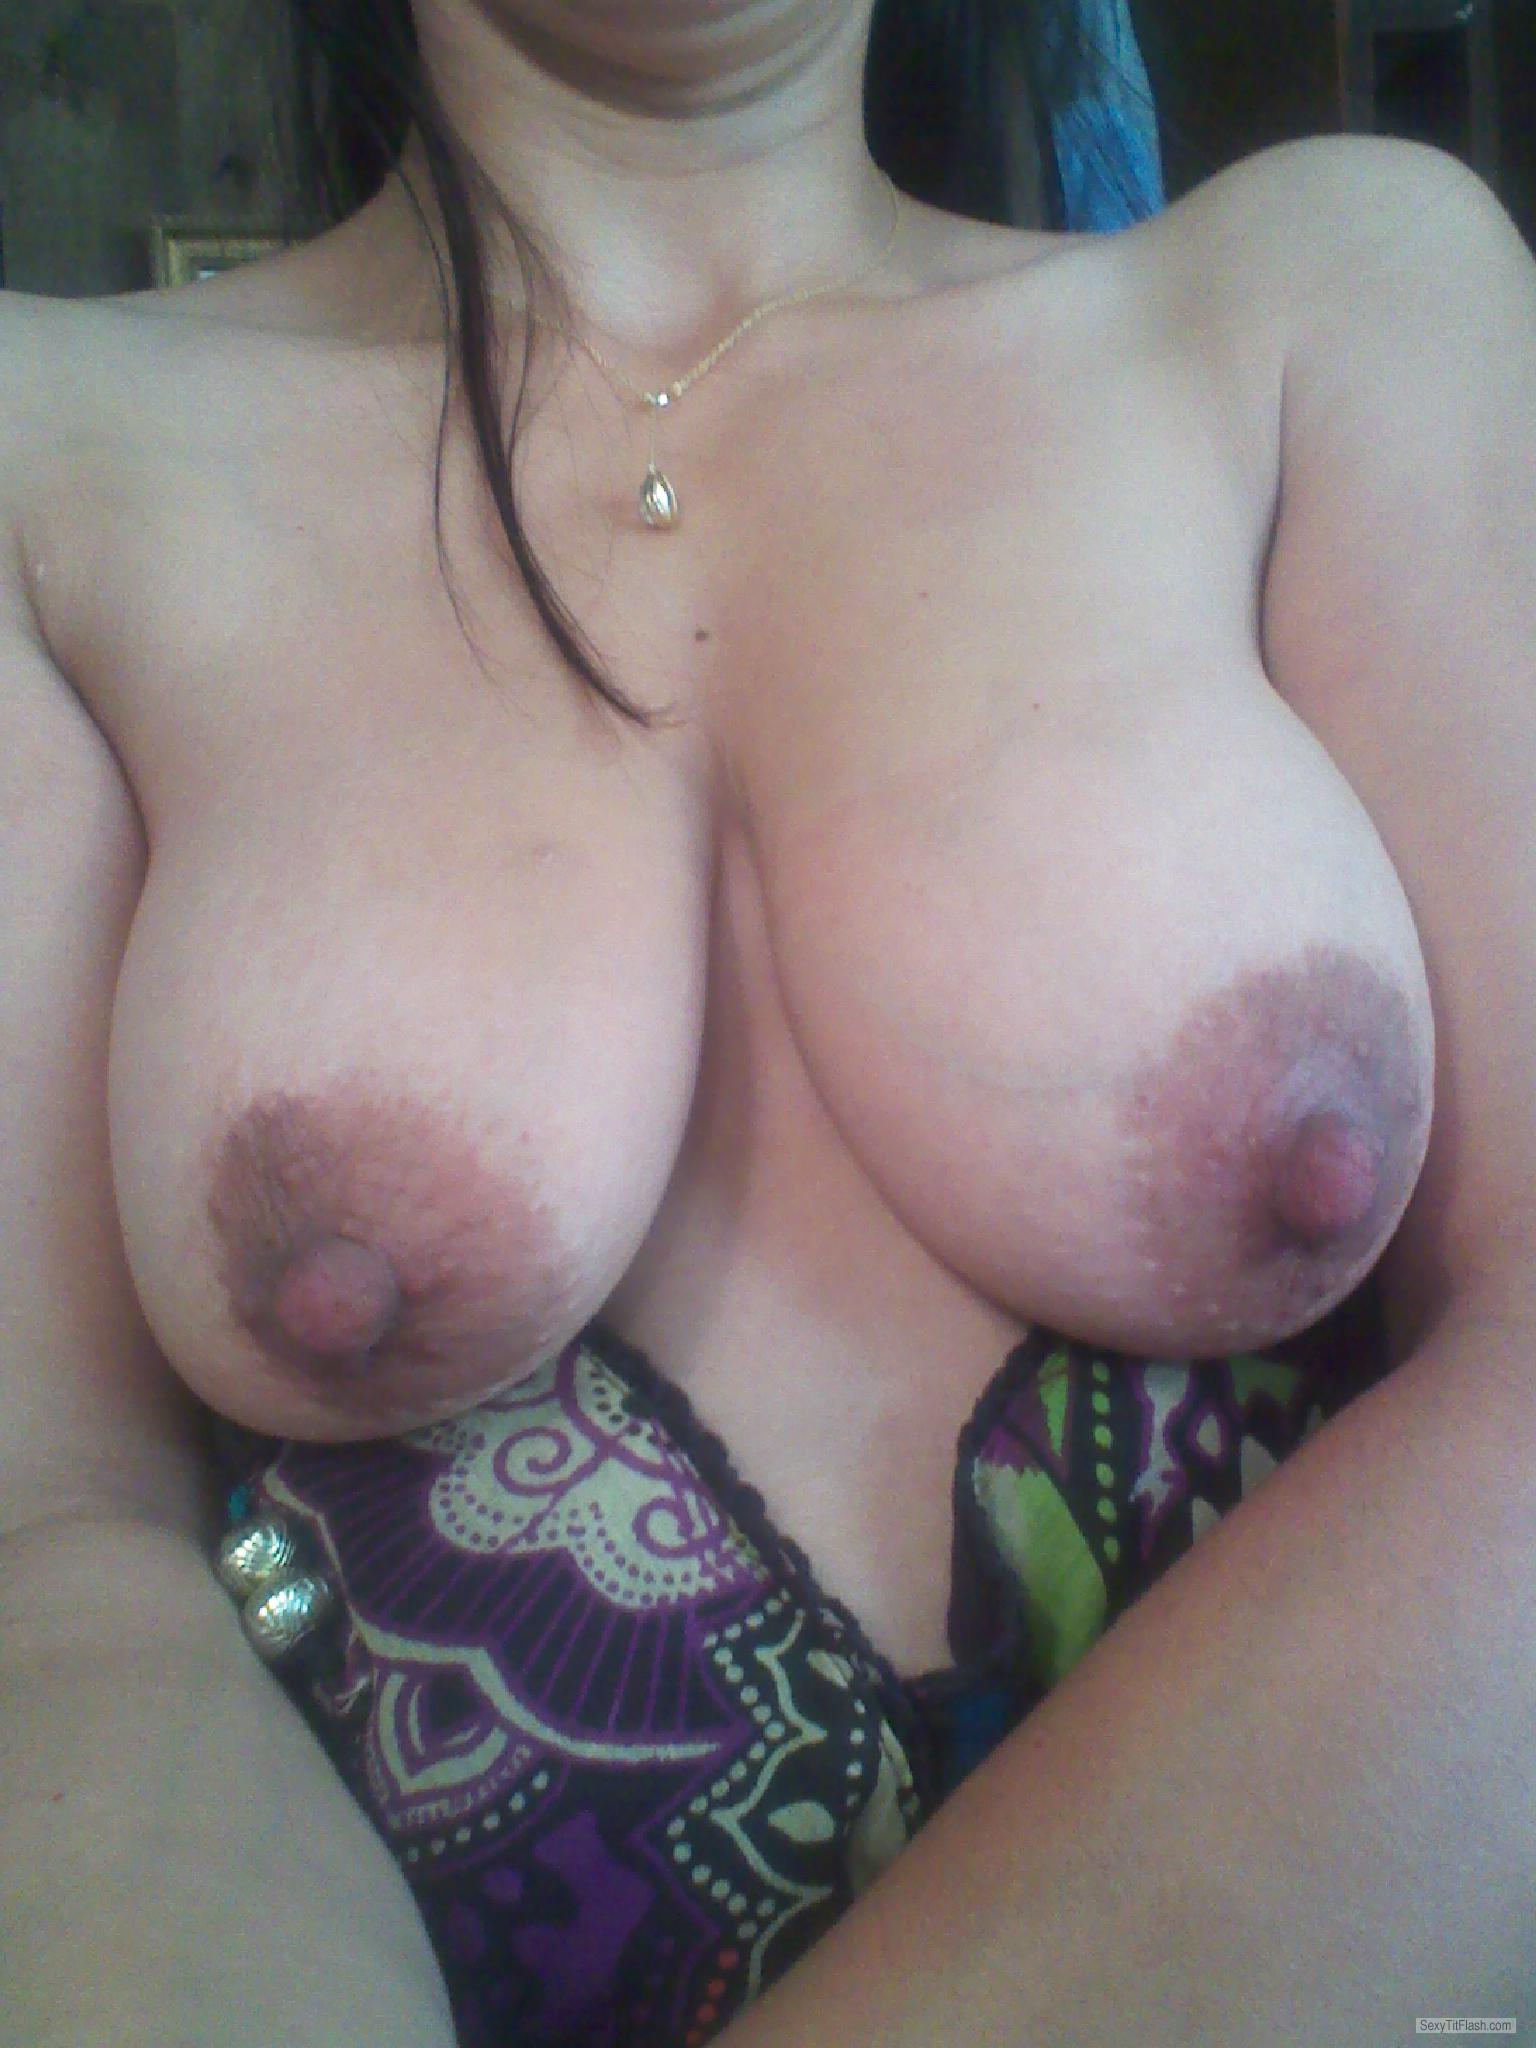 Tit Flash: My Big Tits - Stacey from United States